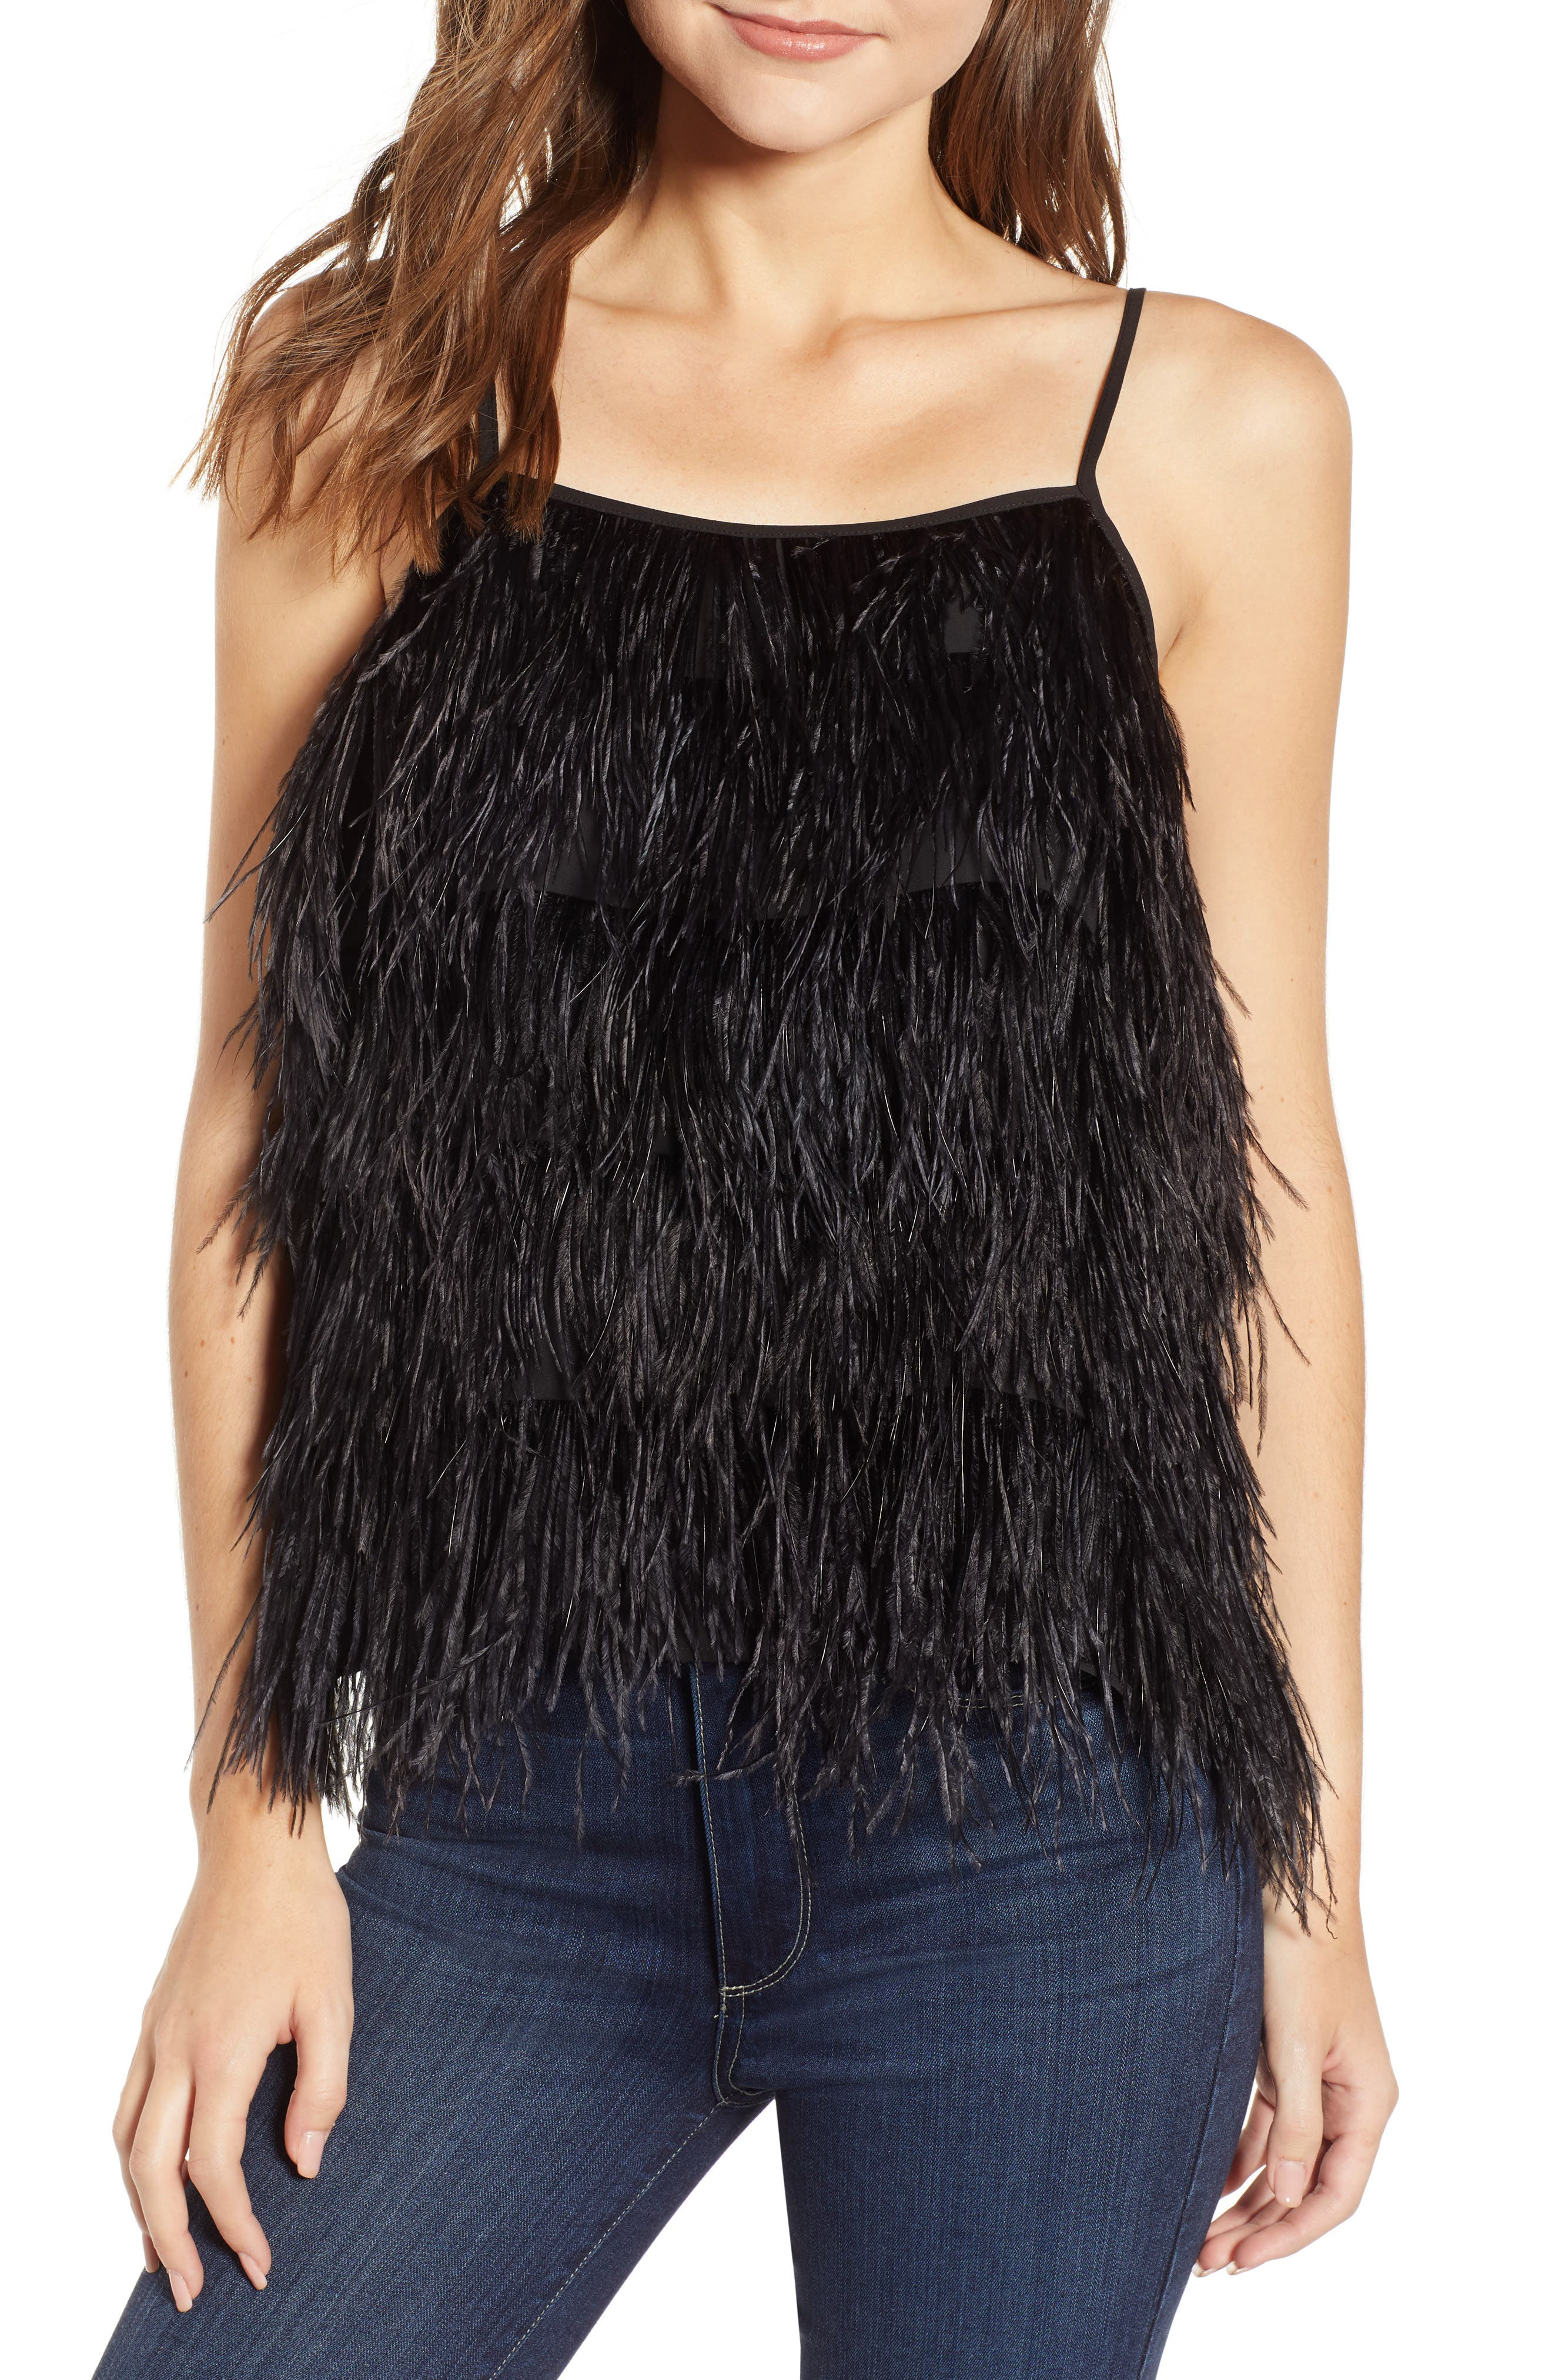 CHELSEA28 Feather Camisole, Main, color, 001